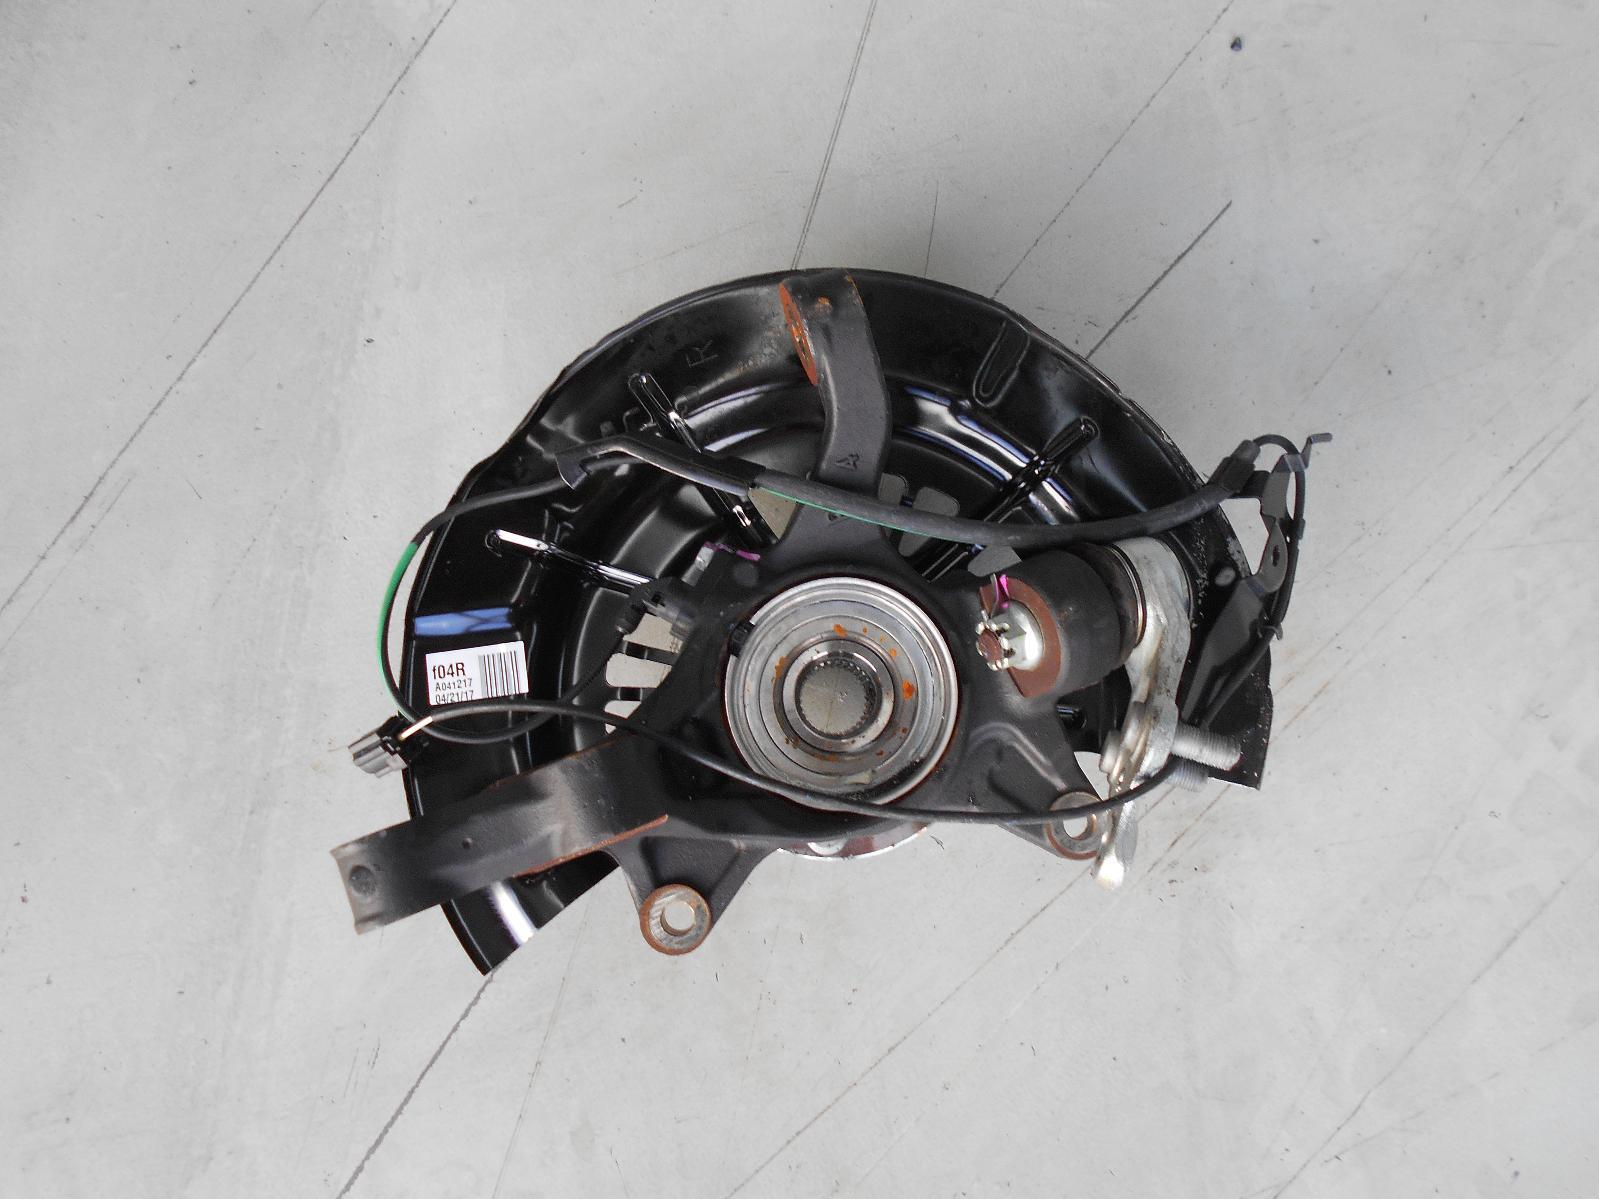 TOYOTA CAMRY, Right Front Hub Assembly, ACV50, HYBRID TYPE, 03/12-05/15